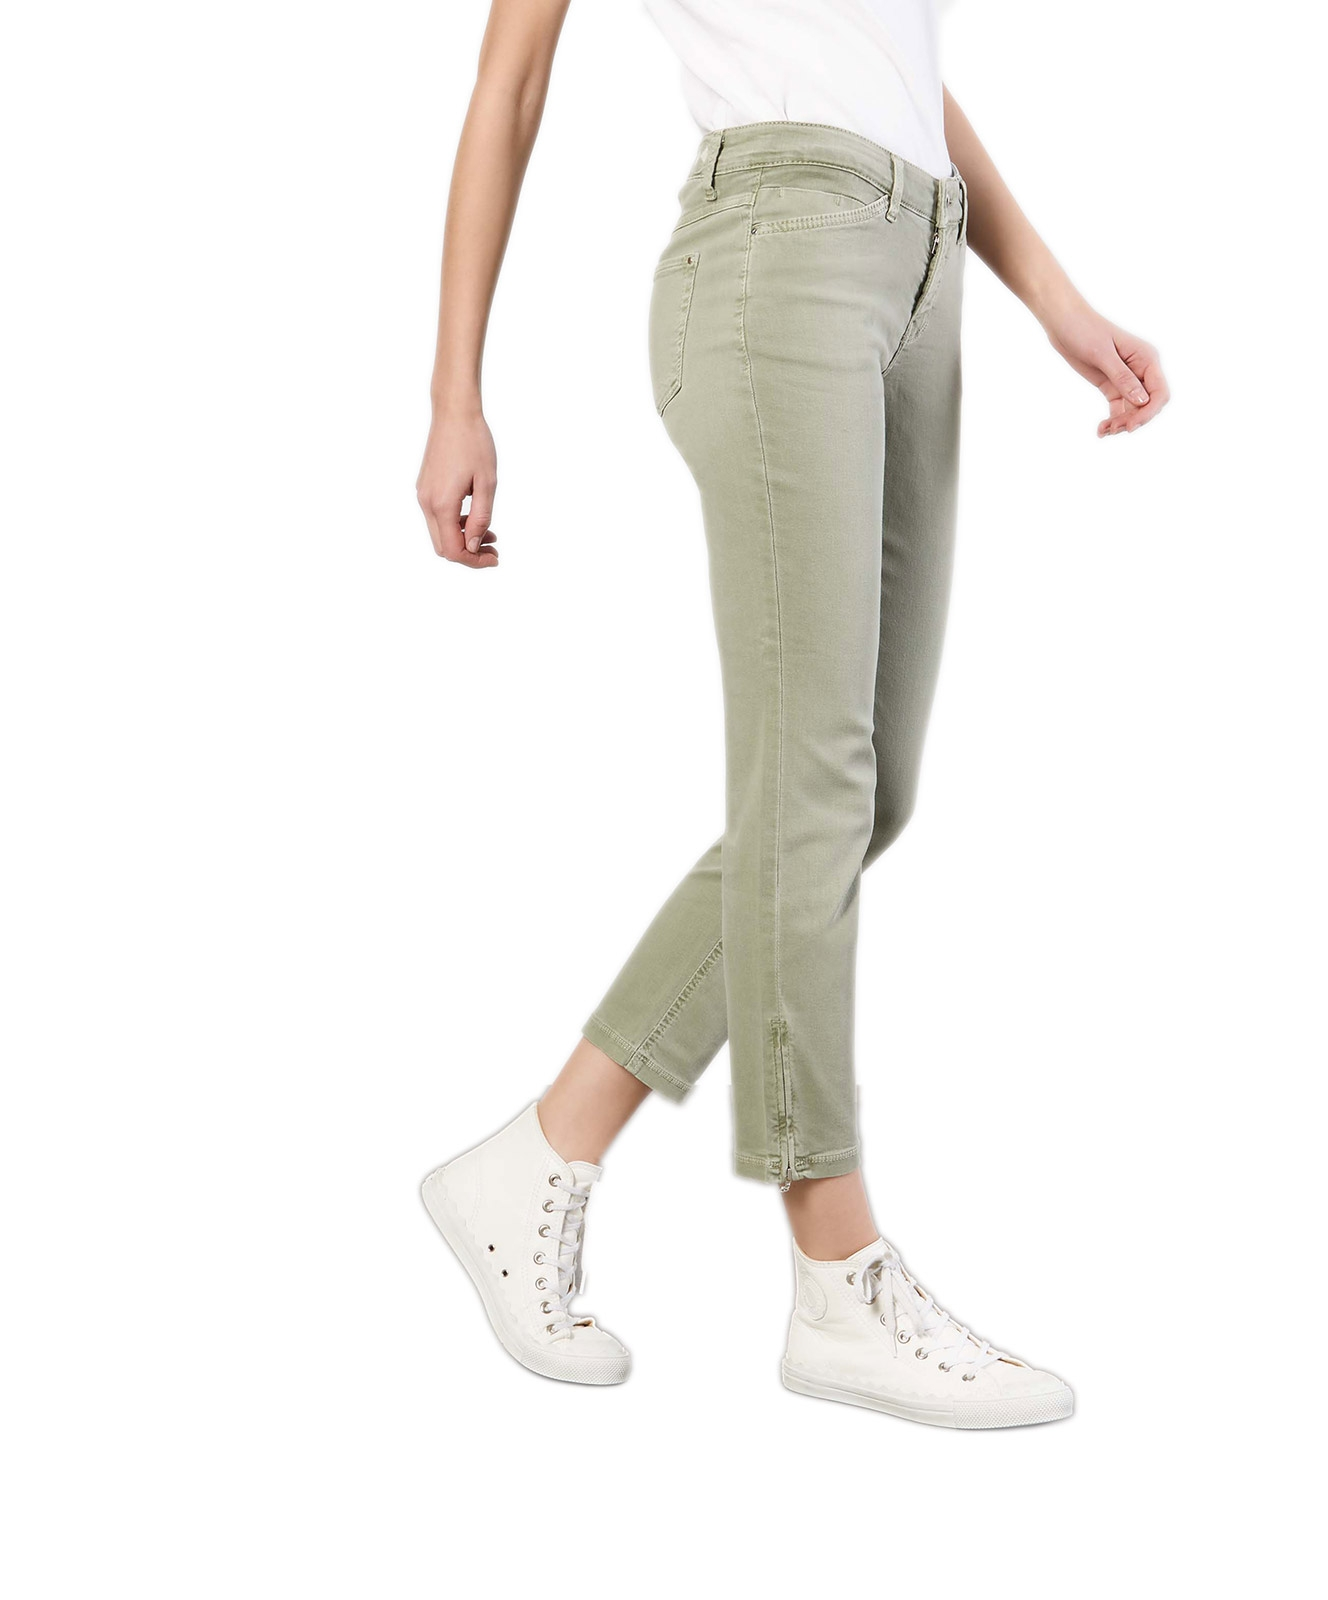 Hosen - MAC Ankle Jeans Dream Chic in Dried Rosemary  - Onlineshop Jeans Meile